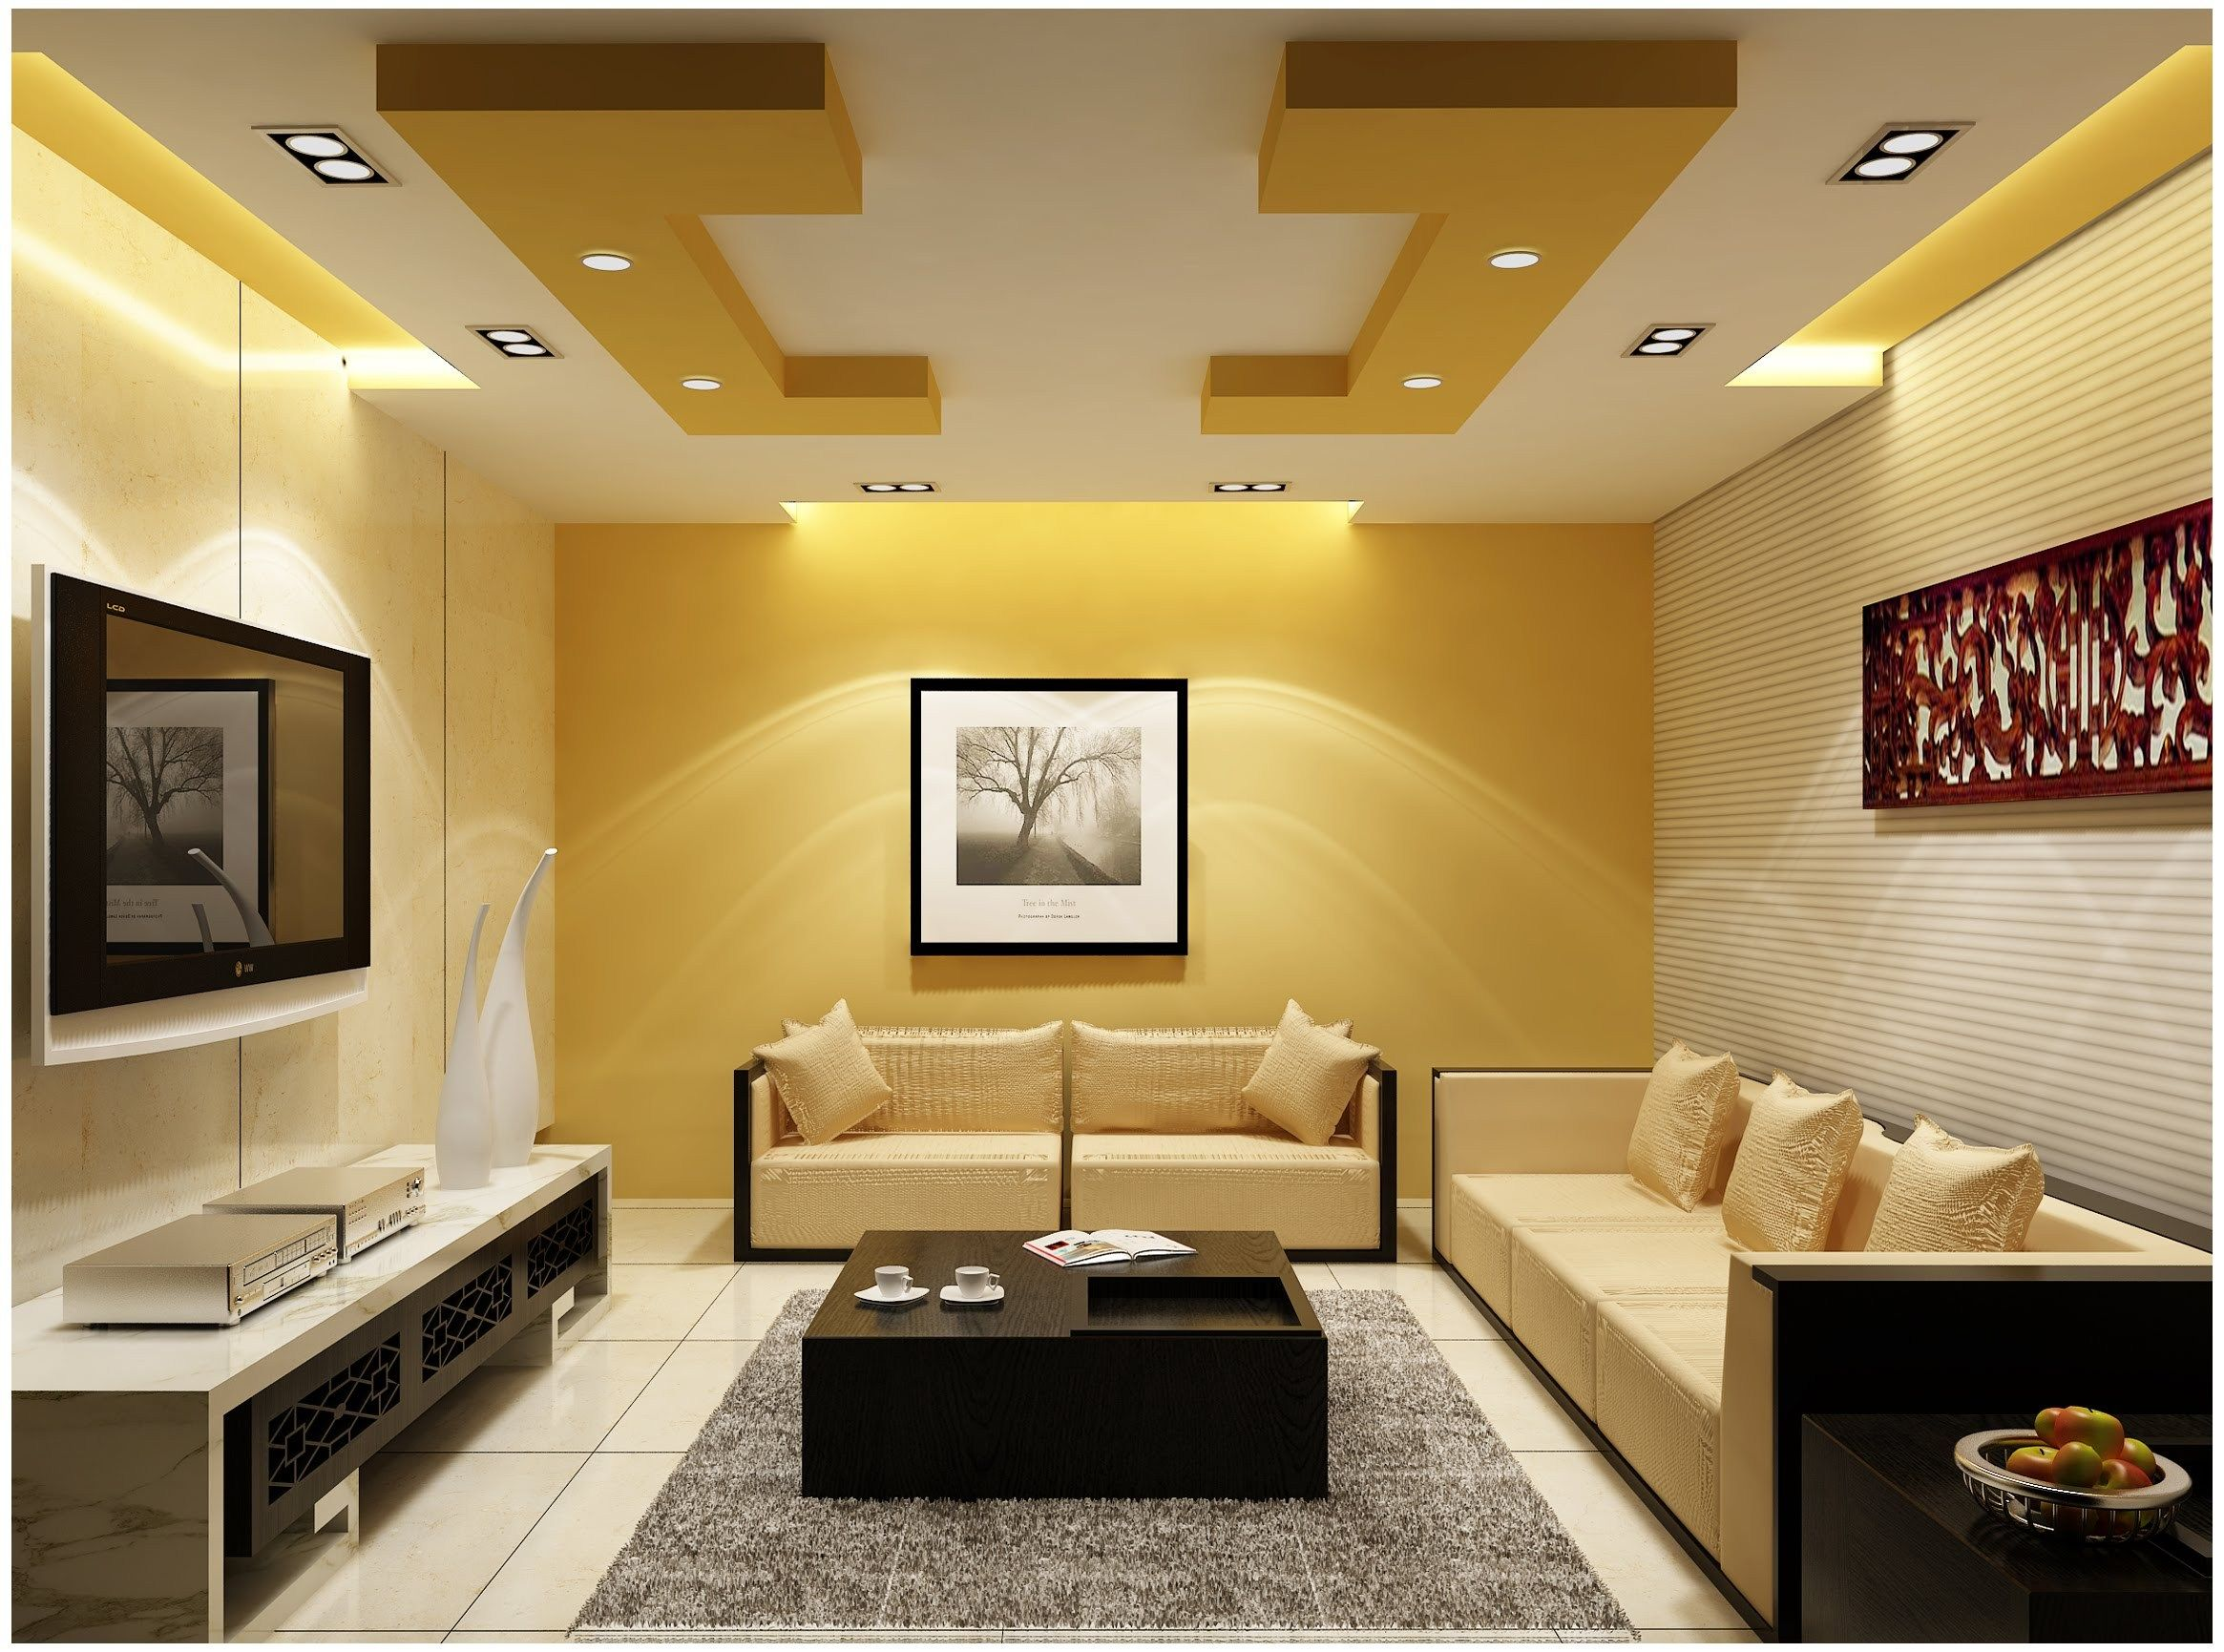 false ceiling designs home selling design 30+ Proper Living Room Lighting Suitable for Your Home - Interior  Decorating Colors. Living Room, Charming False Ceiling Design ...